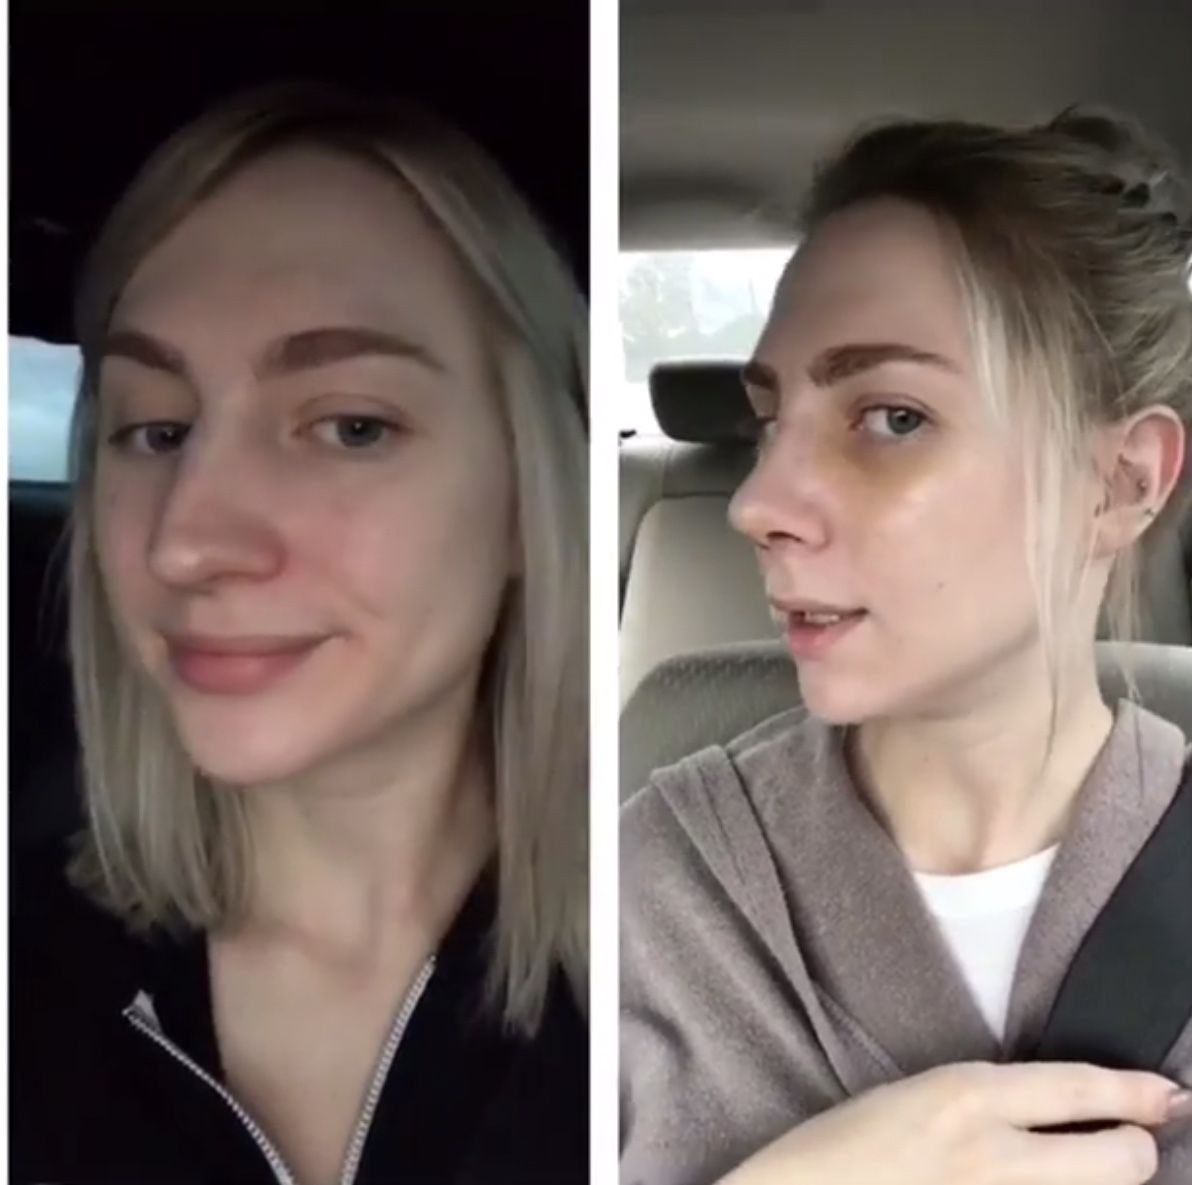 Nose Job: Surgery, Recovery, Cast Removal & Two Week Post-Op Reveal